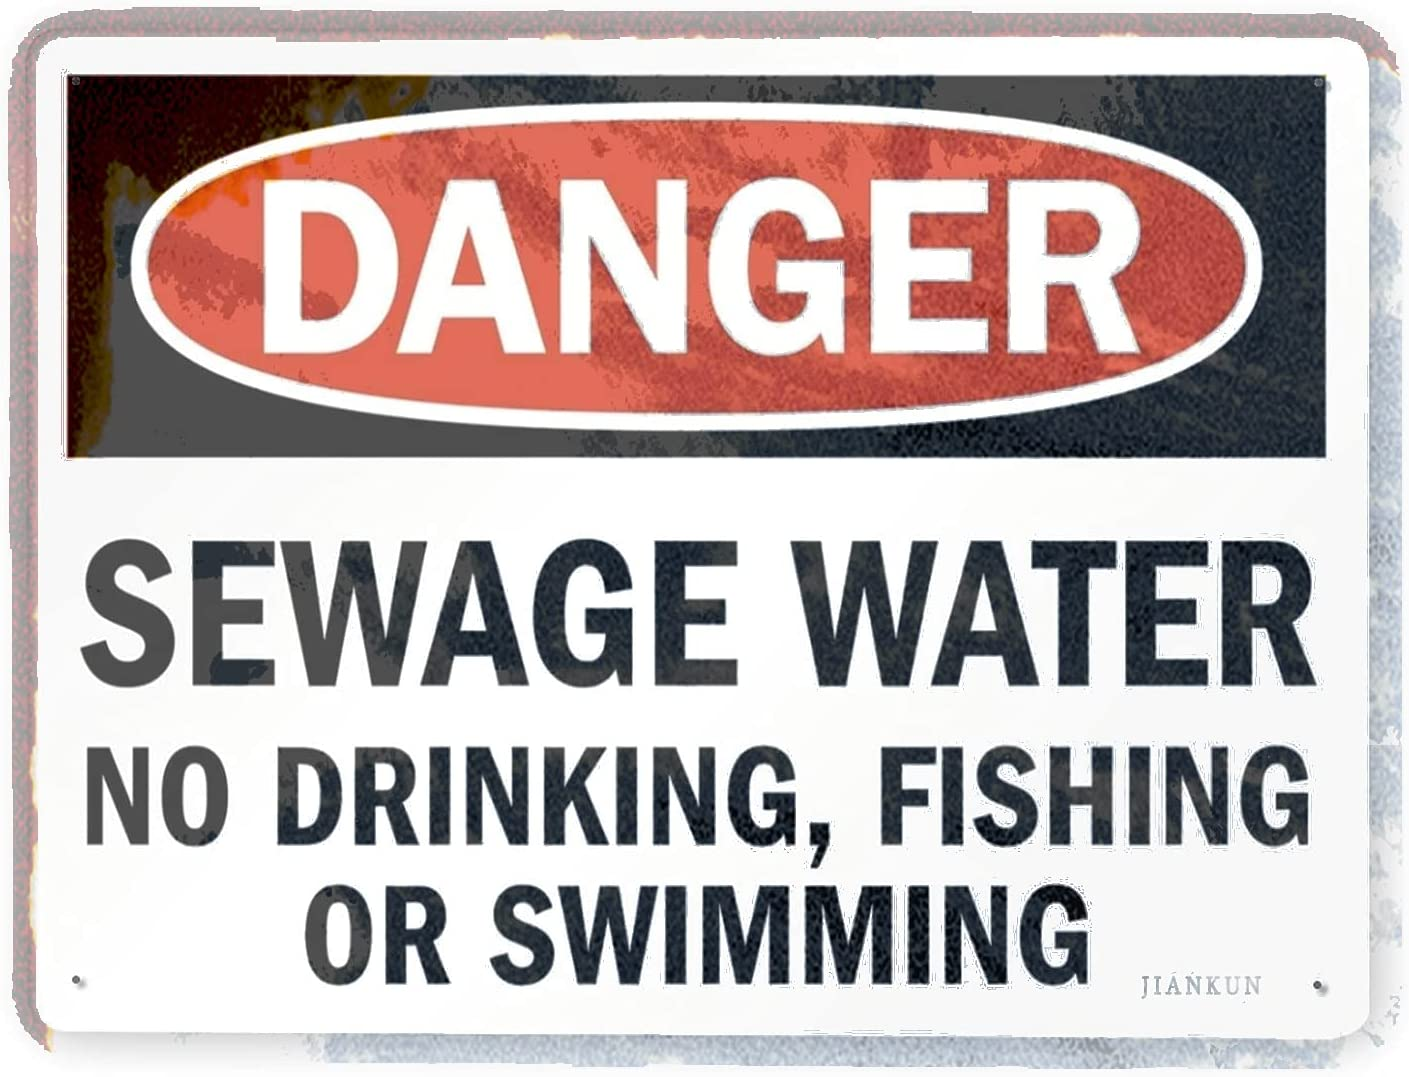 J.DXHYA Excellence Wholesale Man Cave Decor 2 Pieces Water Sewage Warning Danger Sign